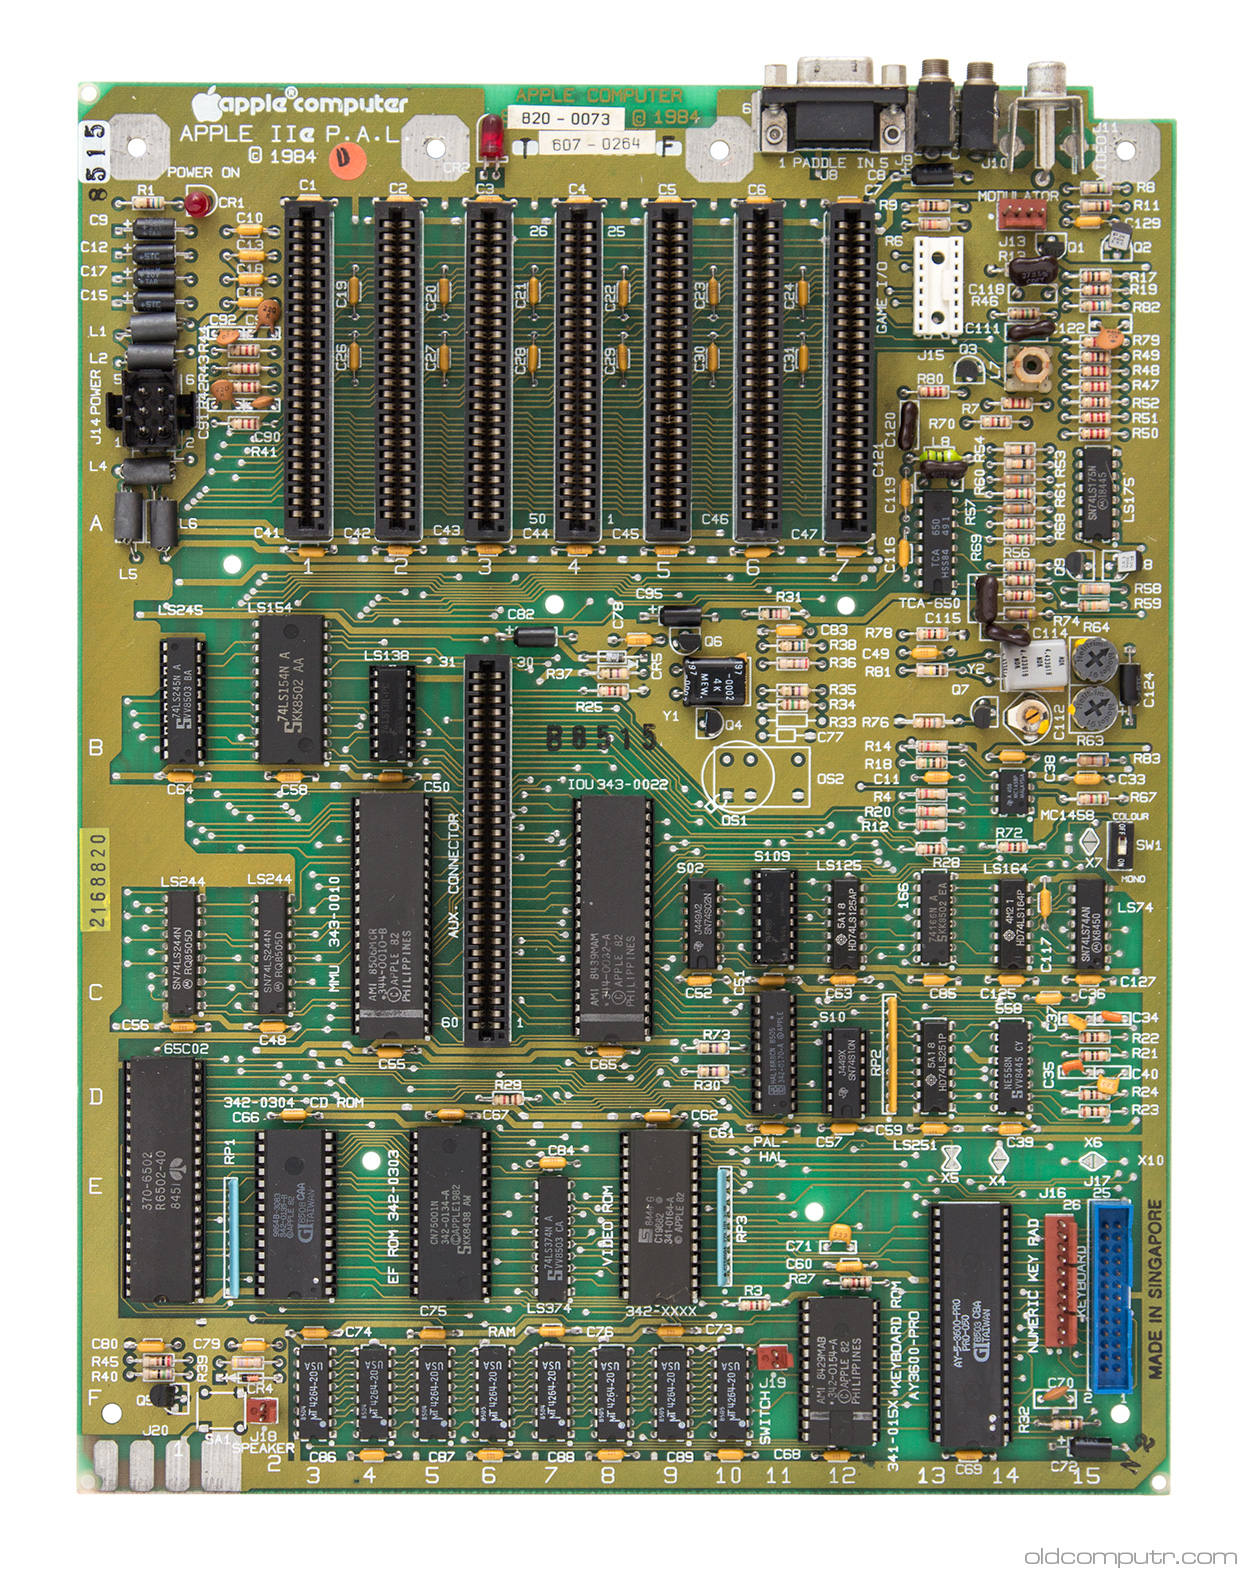 Apple IIe - PAL motherboard